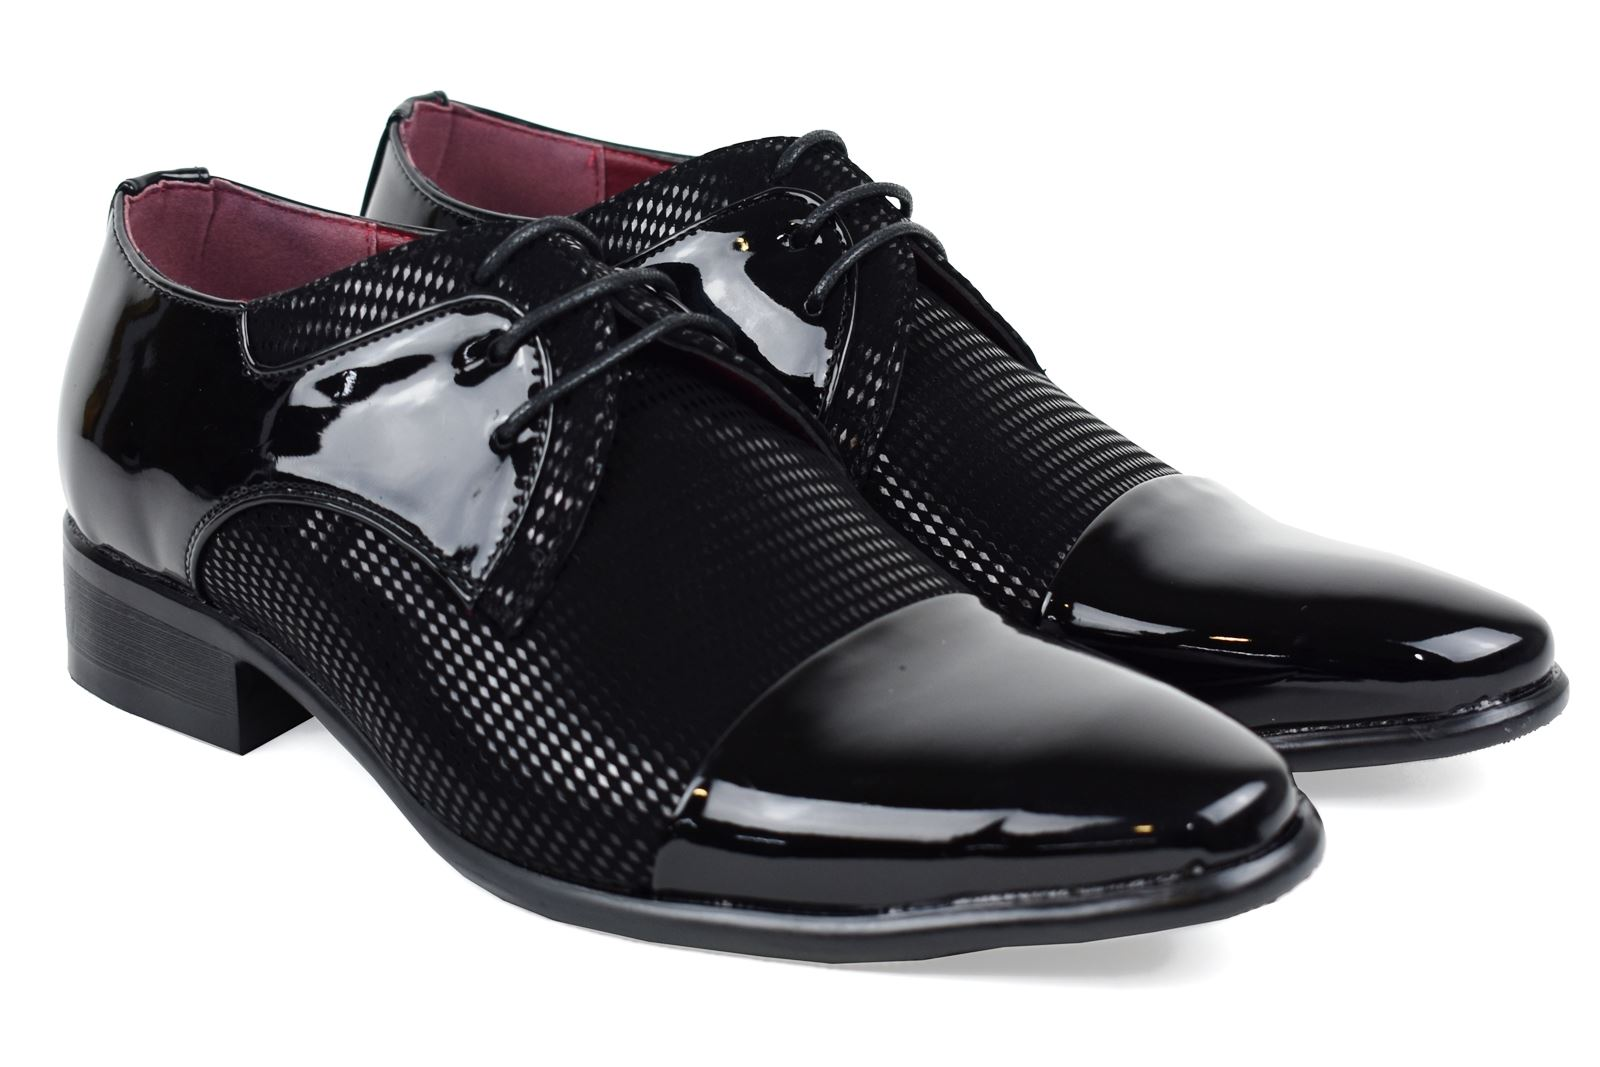 Mens-UK-Style-Leather-Lining-Formal-Office-Wedding-Smart-Work-Brogue-Shoes thumbnail 74